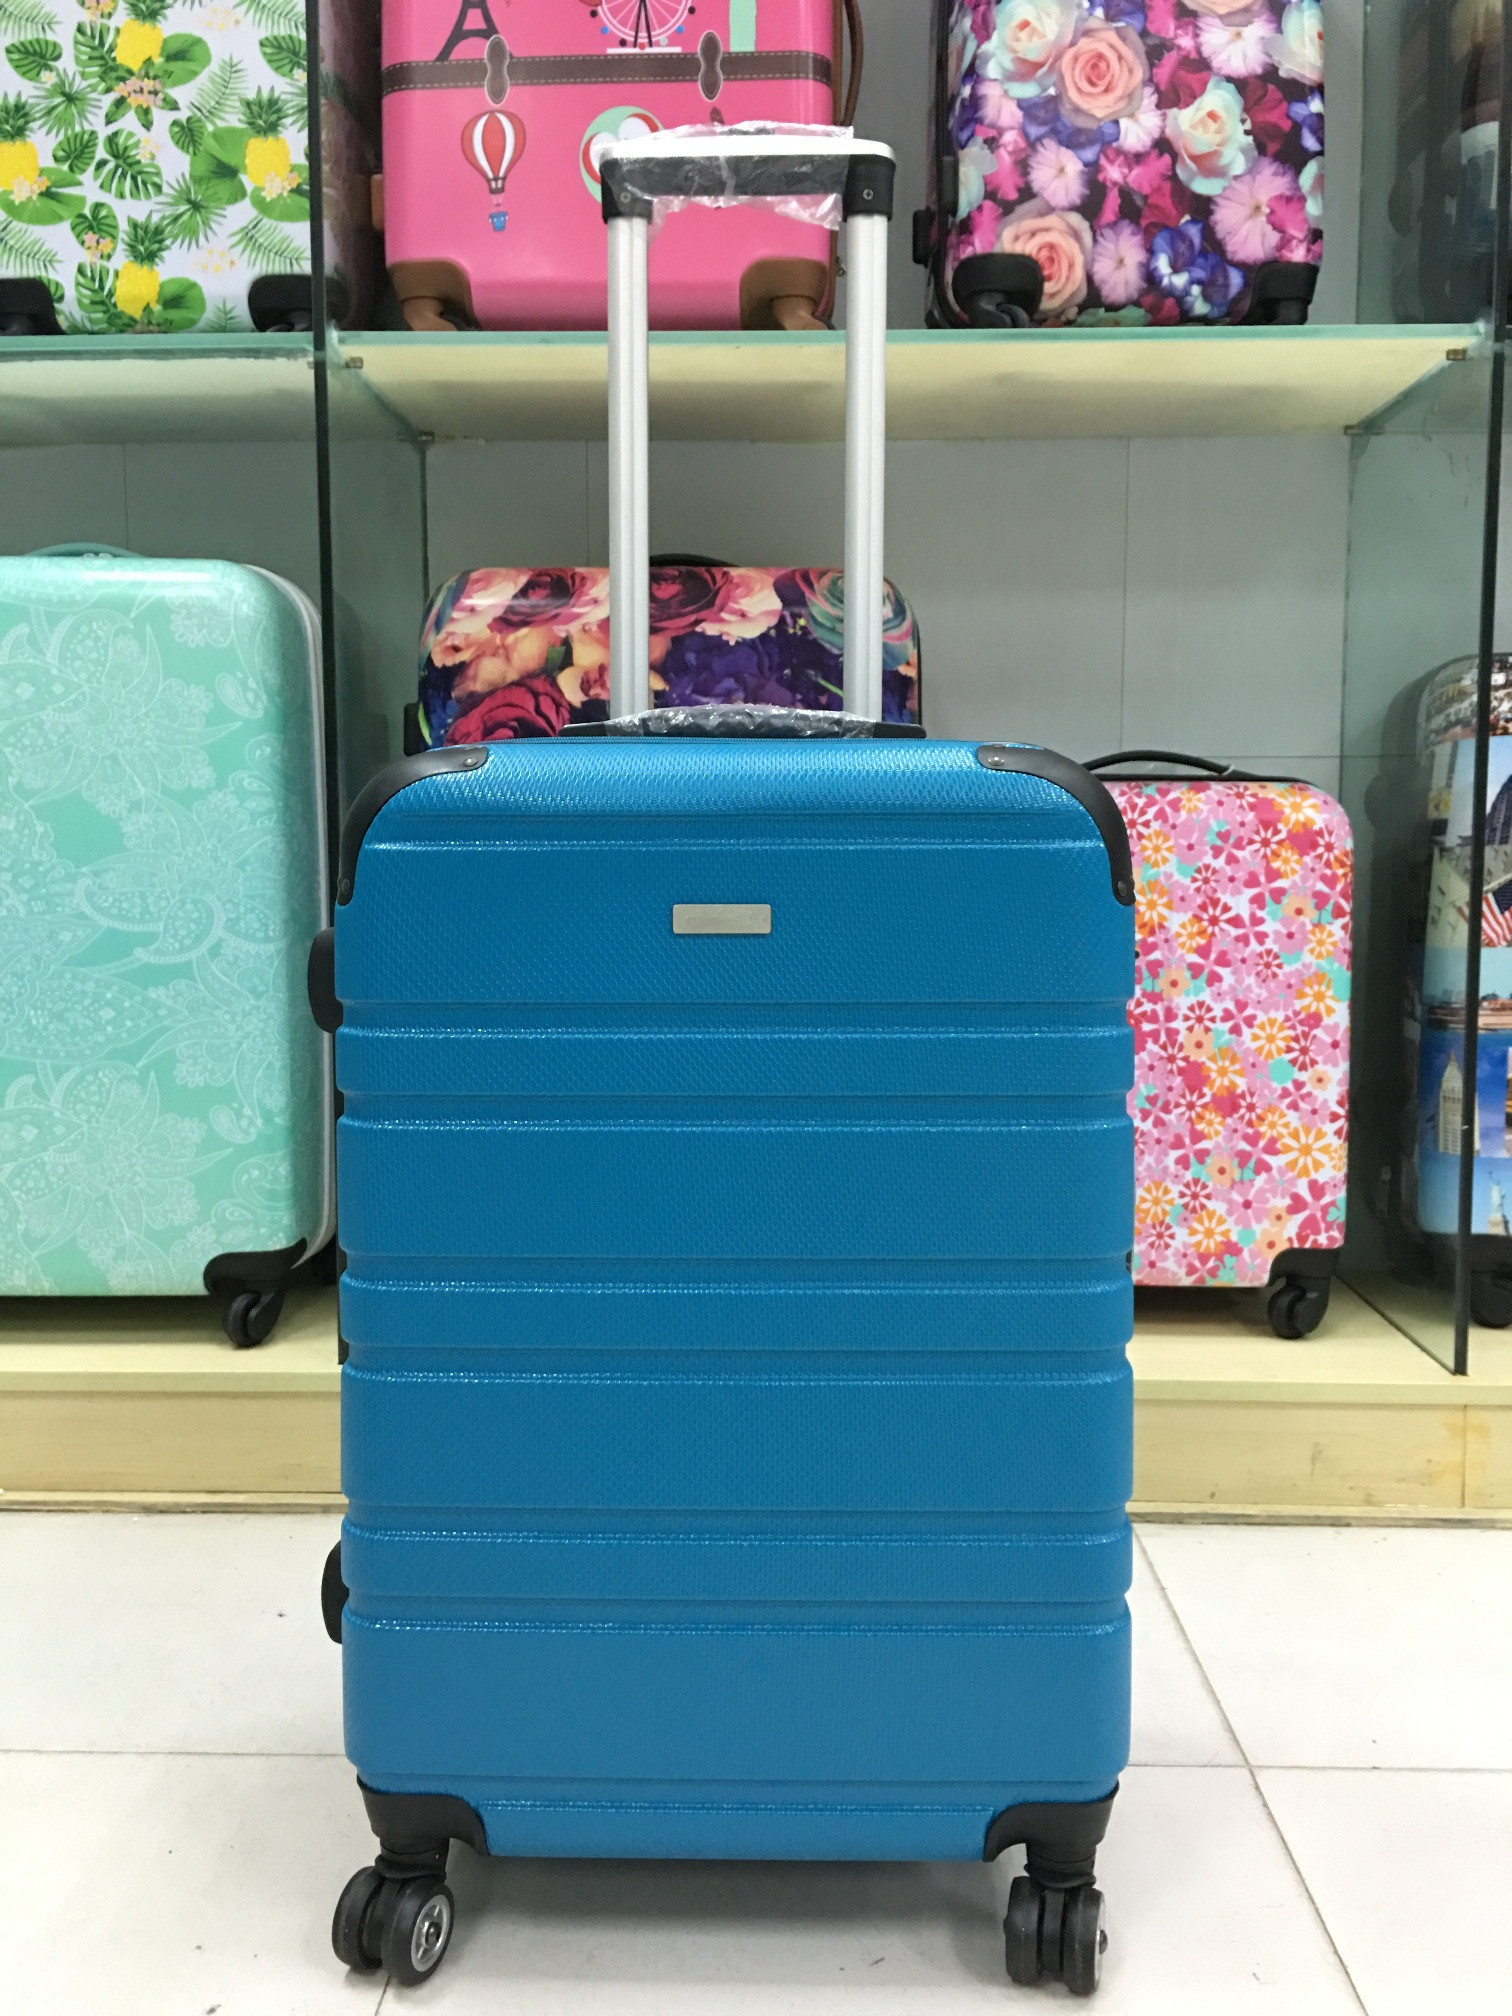 yanteng hand luggage suitcase in blue color